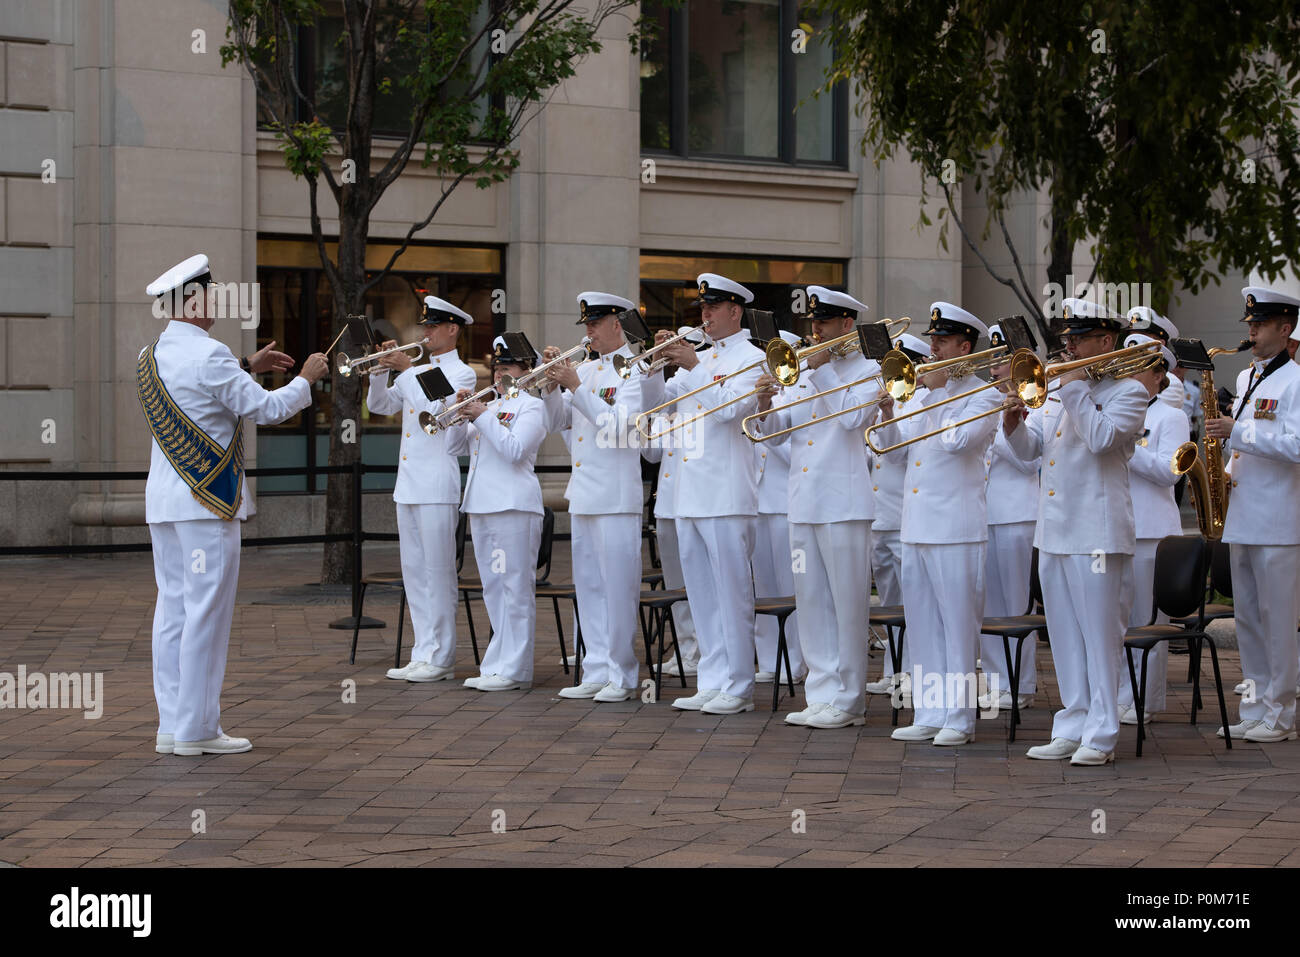 180605-N-HG258-1071 WASHINGTON (June 5, 2018) Members of the U.S. Navy Ceremonial band perform ceremonial music at the U.S. Navy Memorial in Washington, D.C., during the commemoration of the 76th anniversary of the Battle of Midway. The Battle of Midway began on June 4 in 1942 and stands as one of the U.S. Navy's most historically significant naval battles. Fought on the high seas of the Pacific more than half a century ago, this battle altered the course of the war in the Pacific and thereby shaped the outcome of world events. (U.S. Navy photo by Senior Chief Musician Stephen Hassay/Released) - Stock Image